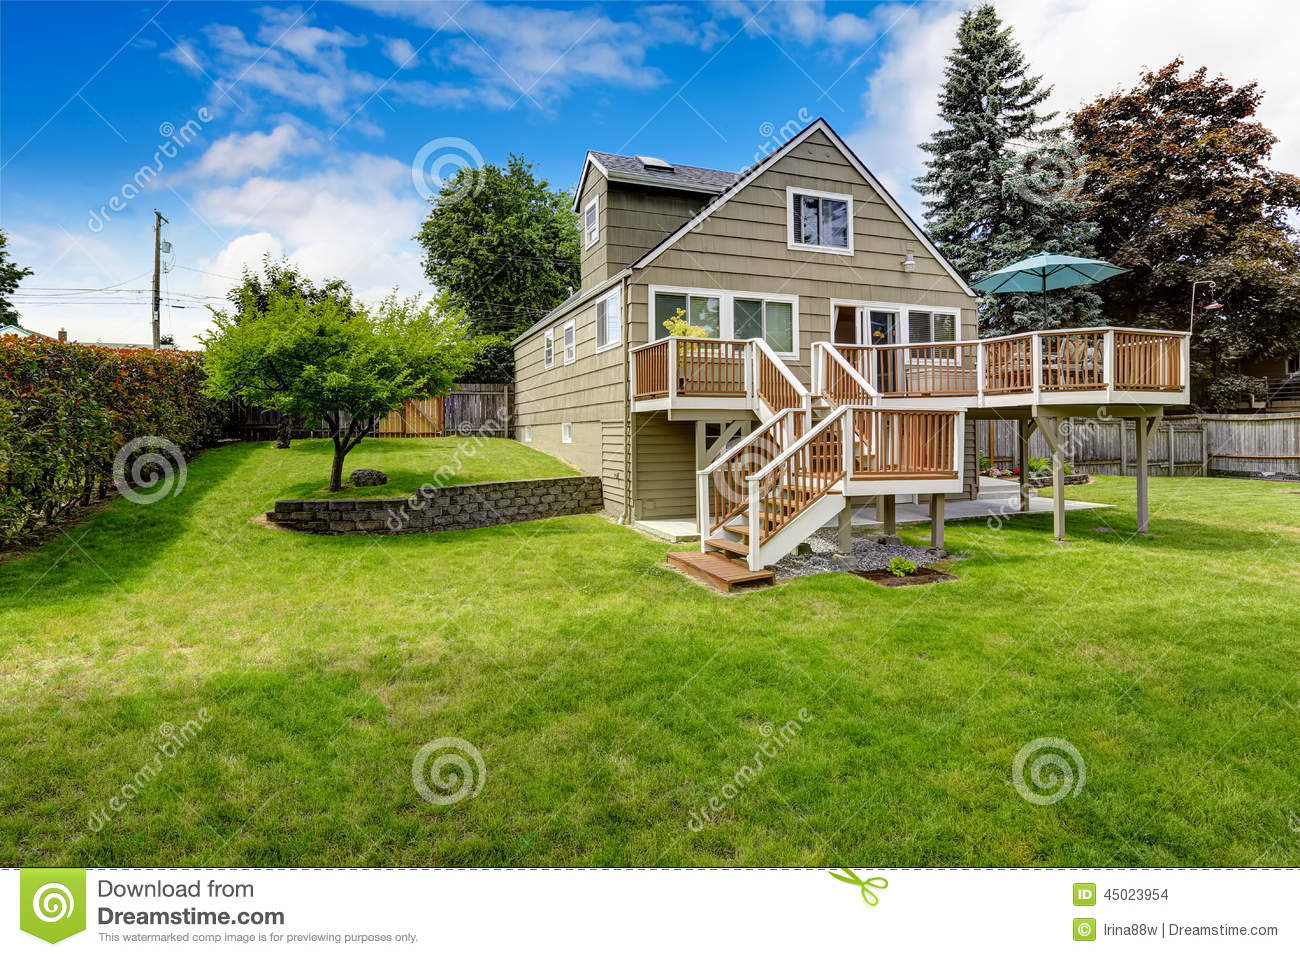 Cozy living room with fireplace - Big House With Walkout Deck In Brown And White Trim Spacious Backyard